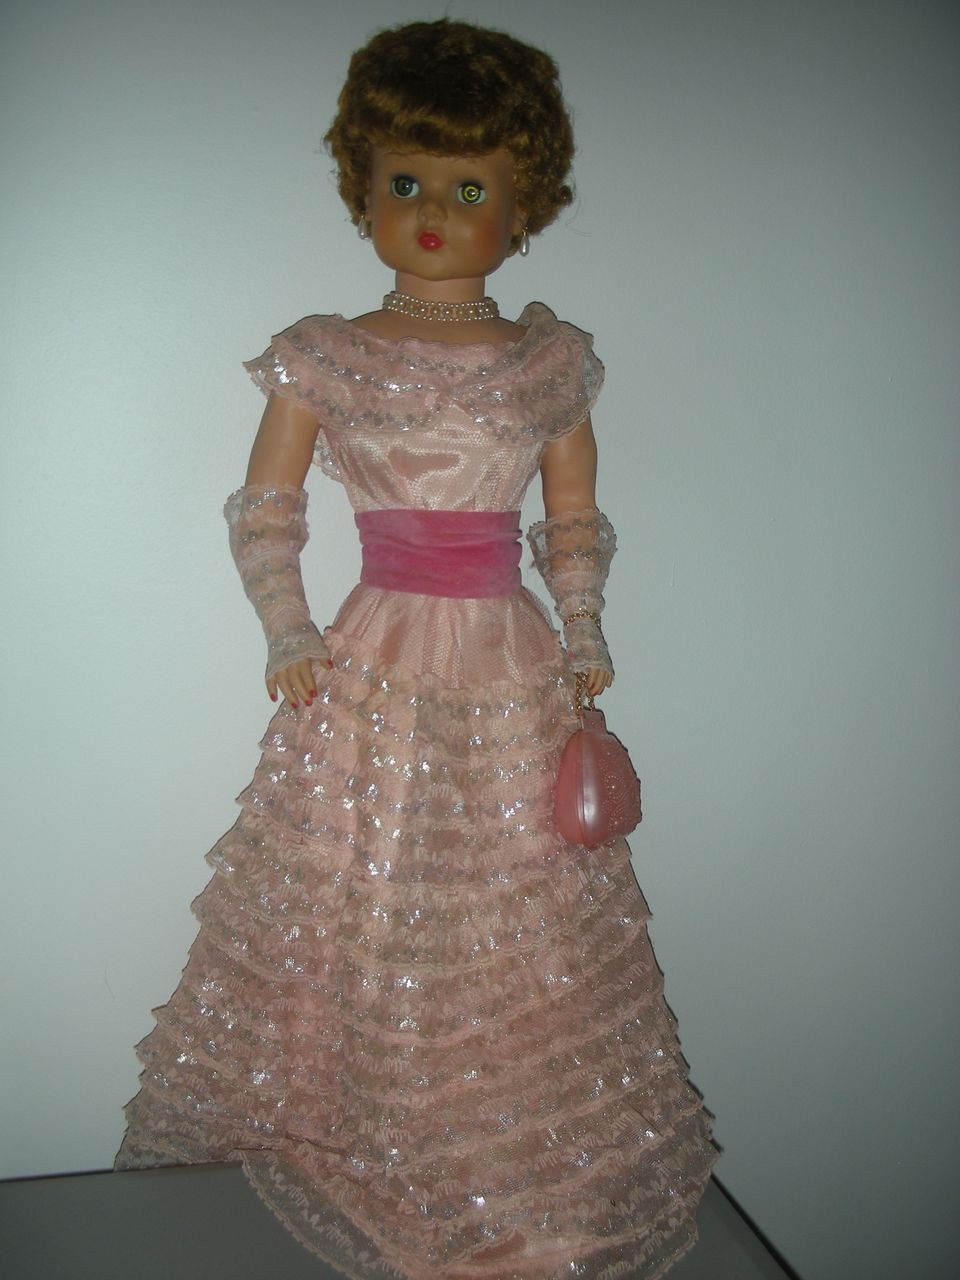 Vintage 1950s Sweet Rosemary Doll By Deluxe Reading